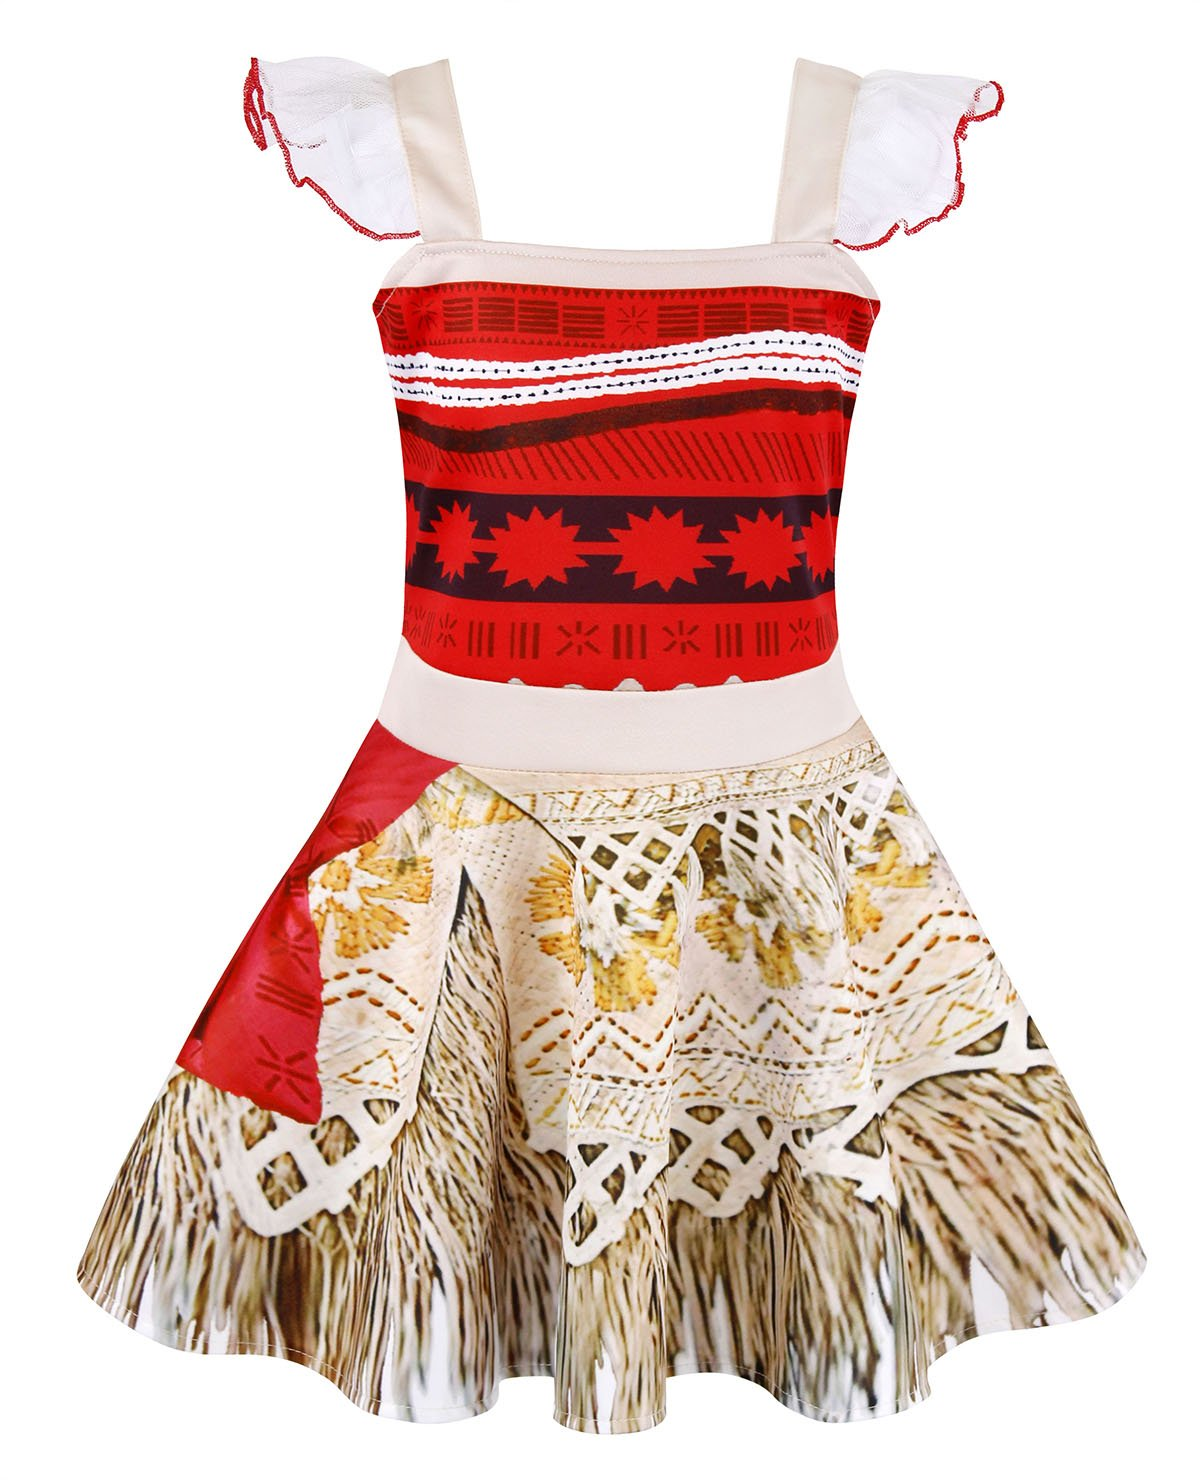 AmzBarley Princess Moana Dress Adventure Costume for Girls Kids Halloween Party Cosplay Fancy Dress Up